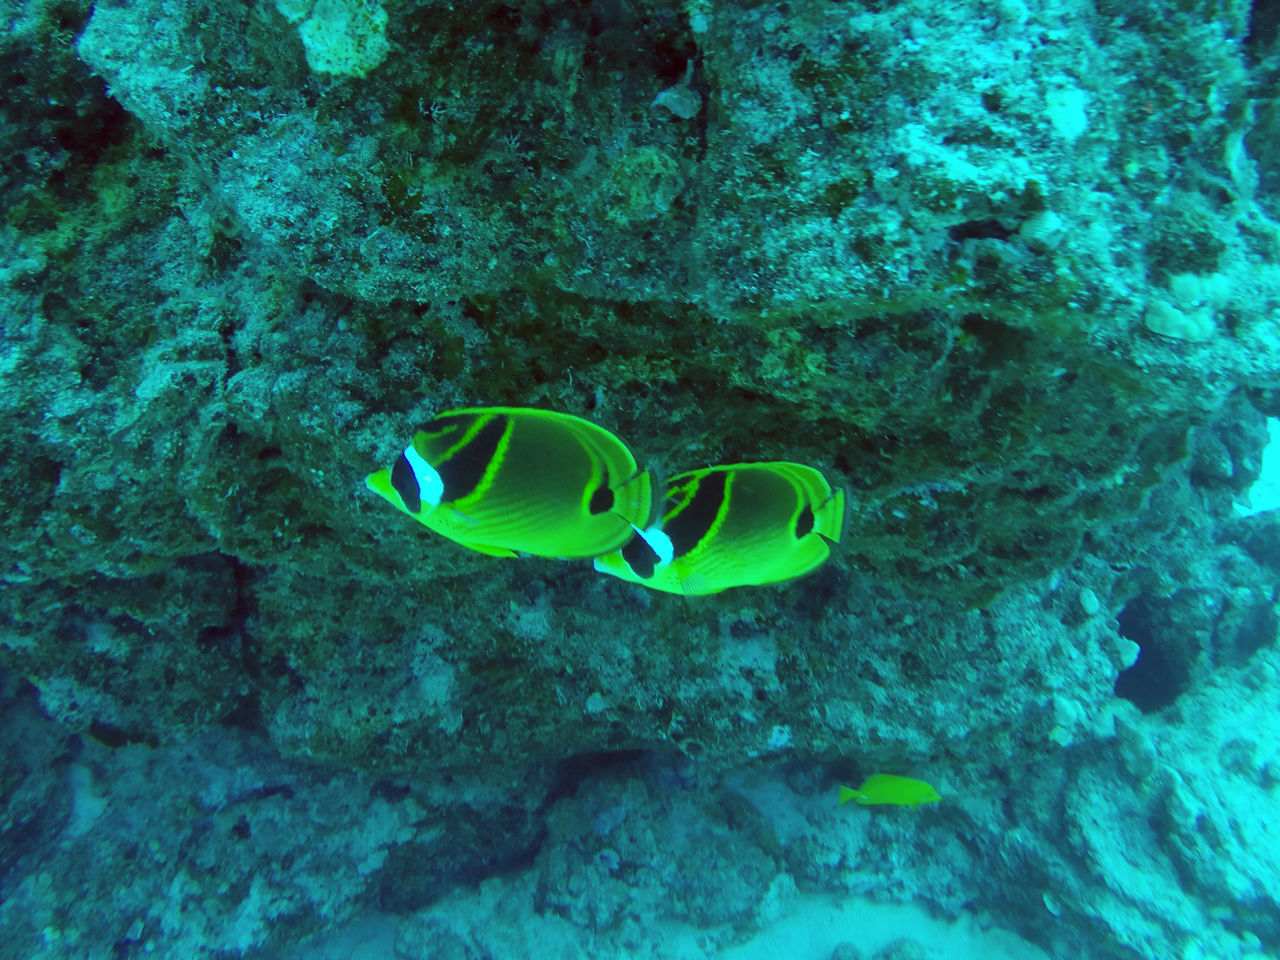 Bandits Fish Hawaii Kona SCUBA Scuba Diving